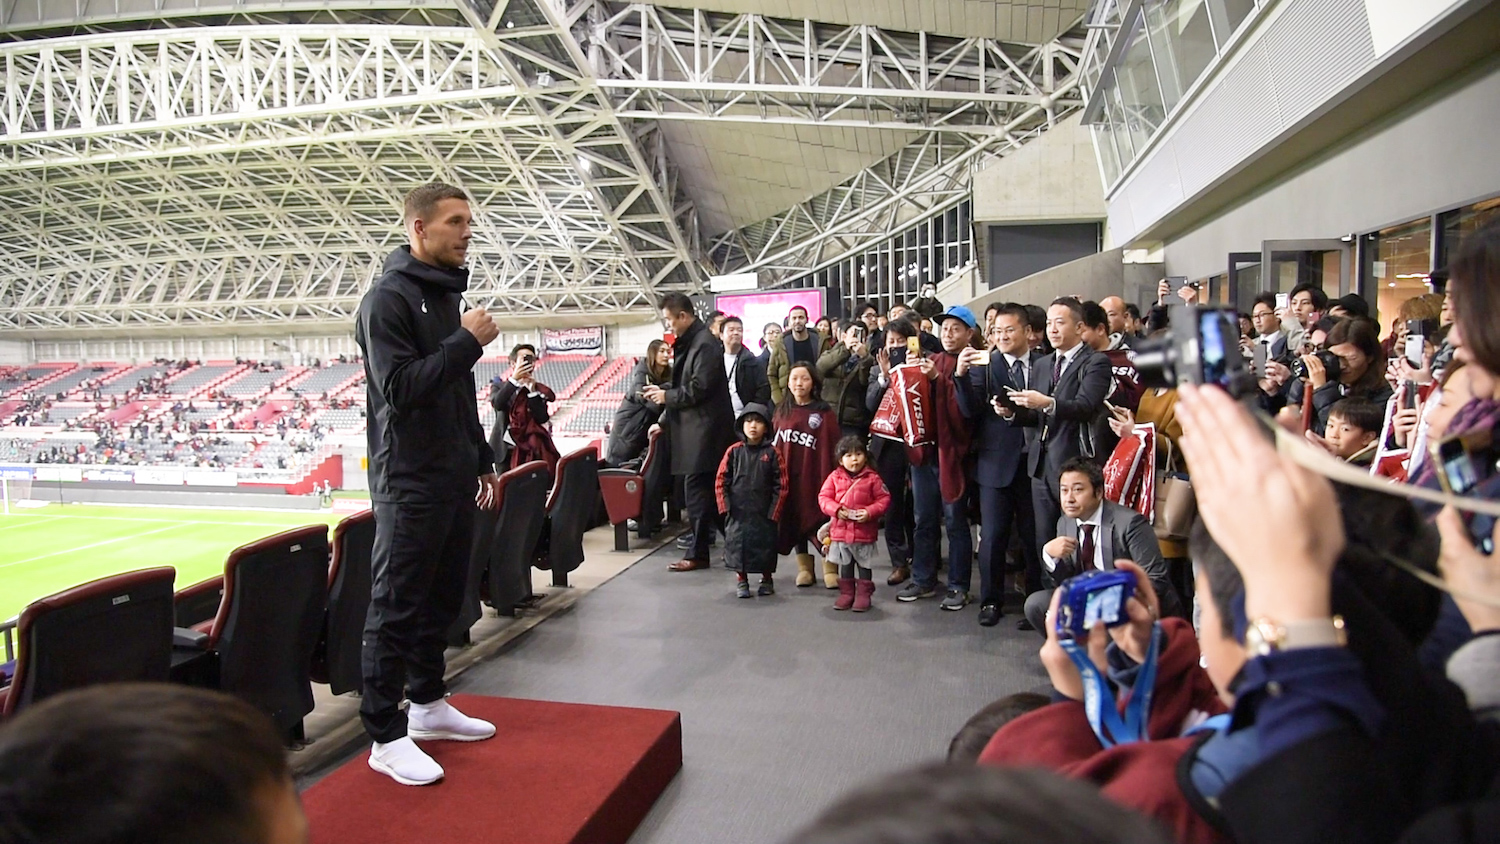 For Vissel Kobe, the new season has brought several exciting developments, starting with the very ground underneath the players' feet.